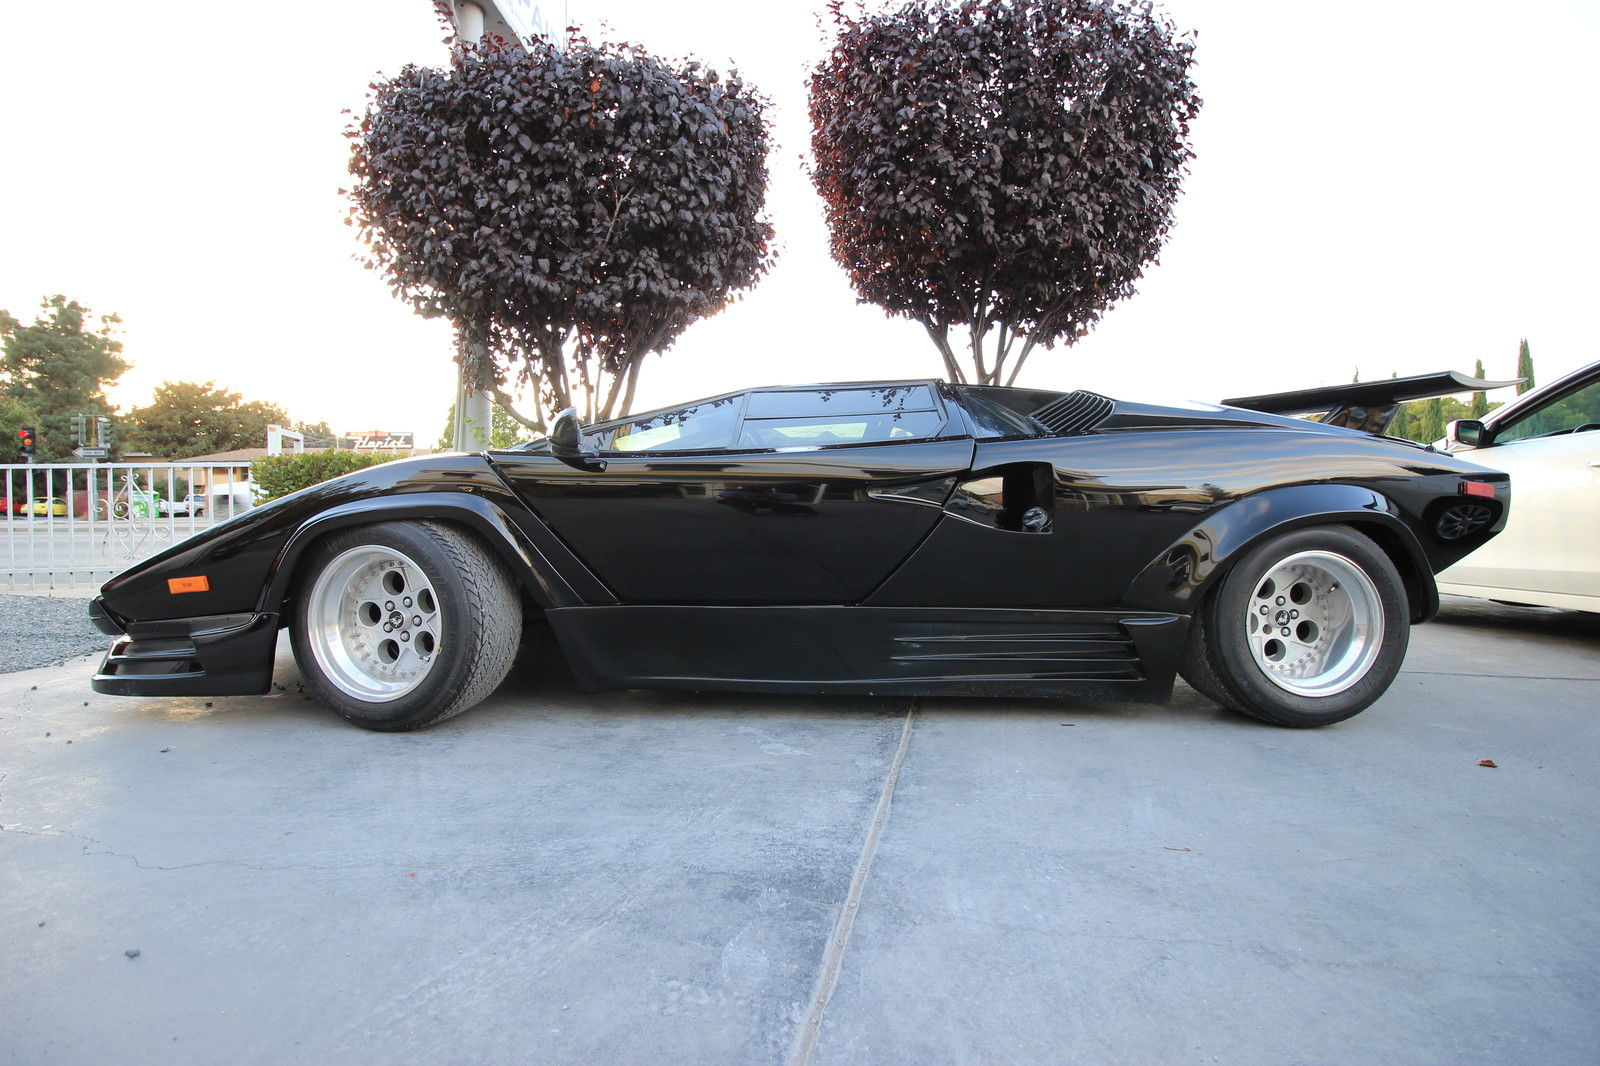 1989 lamborghini countach 25th anniversary coupe 2 door 5. Black Bedroom Furniture Sets. Home Design Ideas